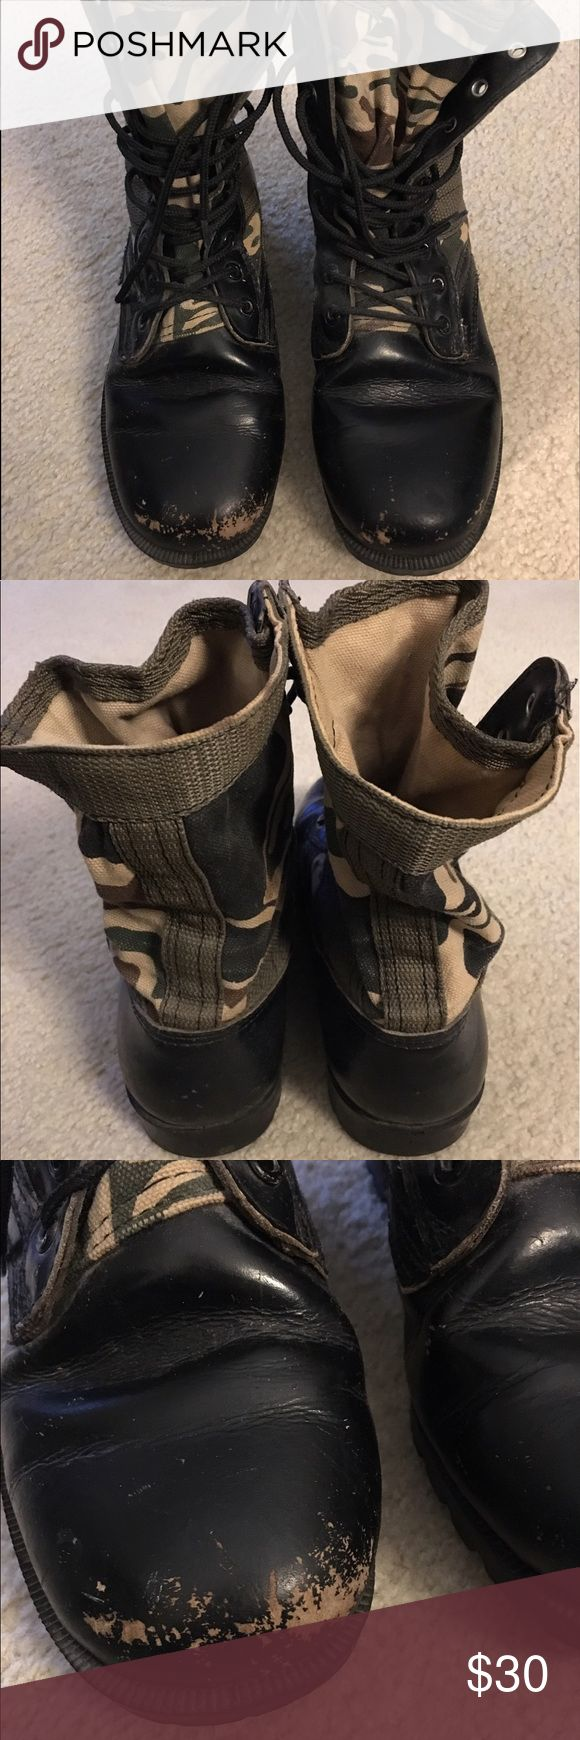 Women's Size 9 Camo/Black Military Riding Boots Women's Size 9 Camouflage & Black Military Boots Distressed leather with cloth camo uppers Very clean From a clean, smoke free home Shoes Combat & Moto Boots